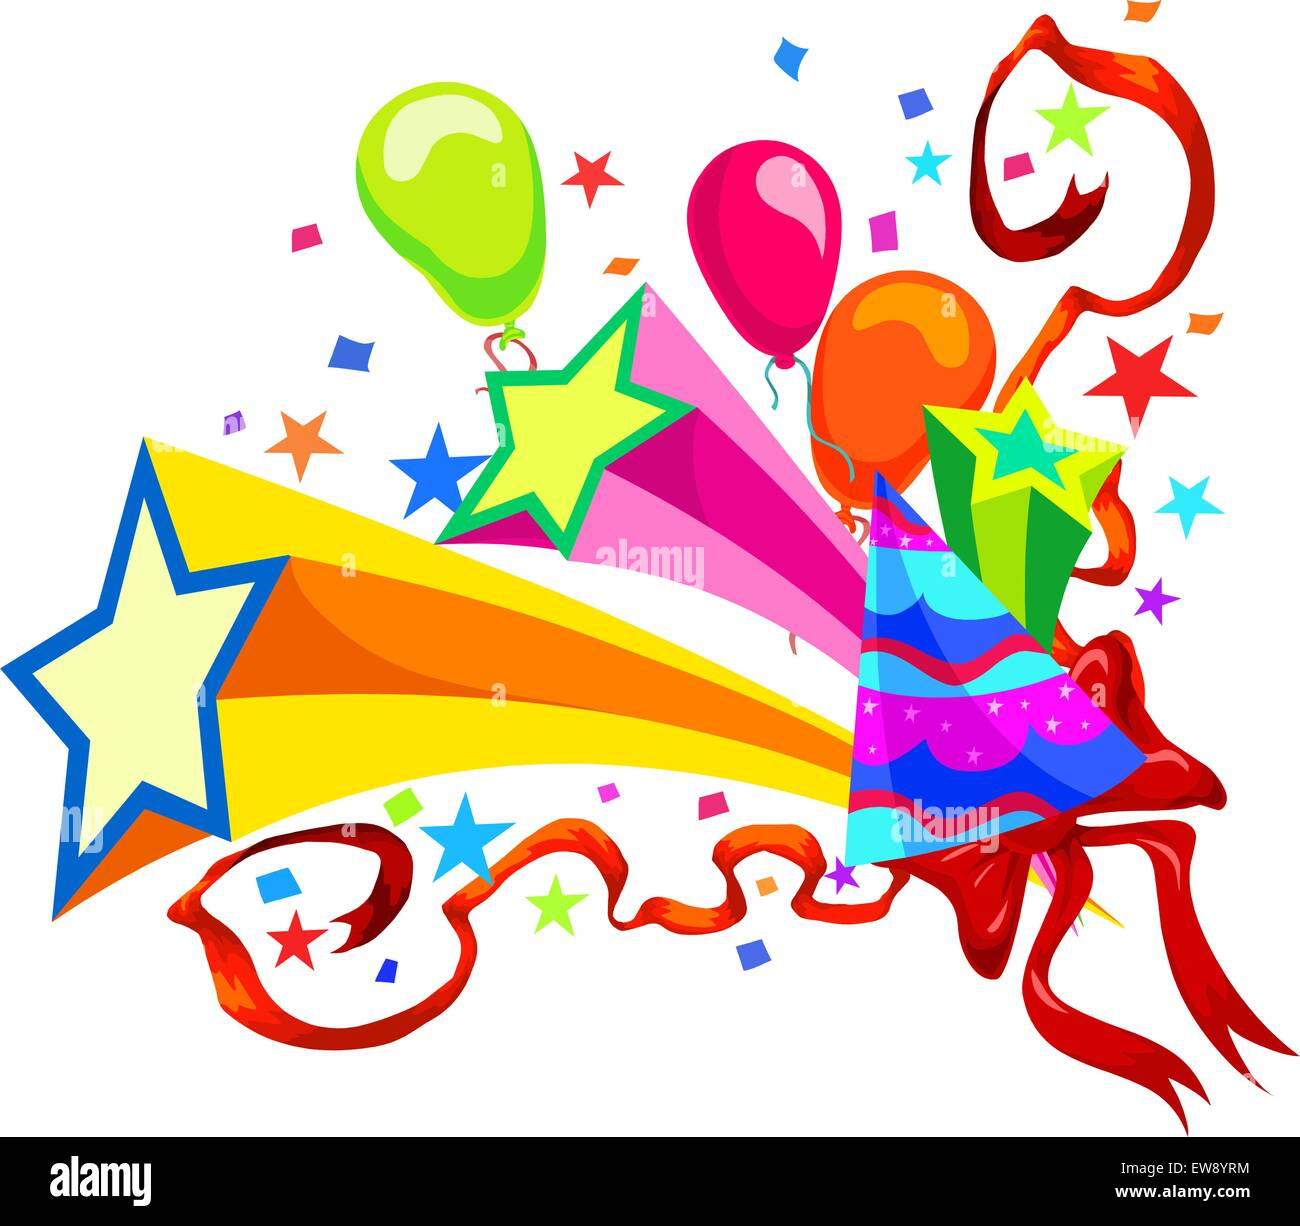 Celebration With Balloons, Stars, Party Hats, Ribbons And